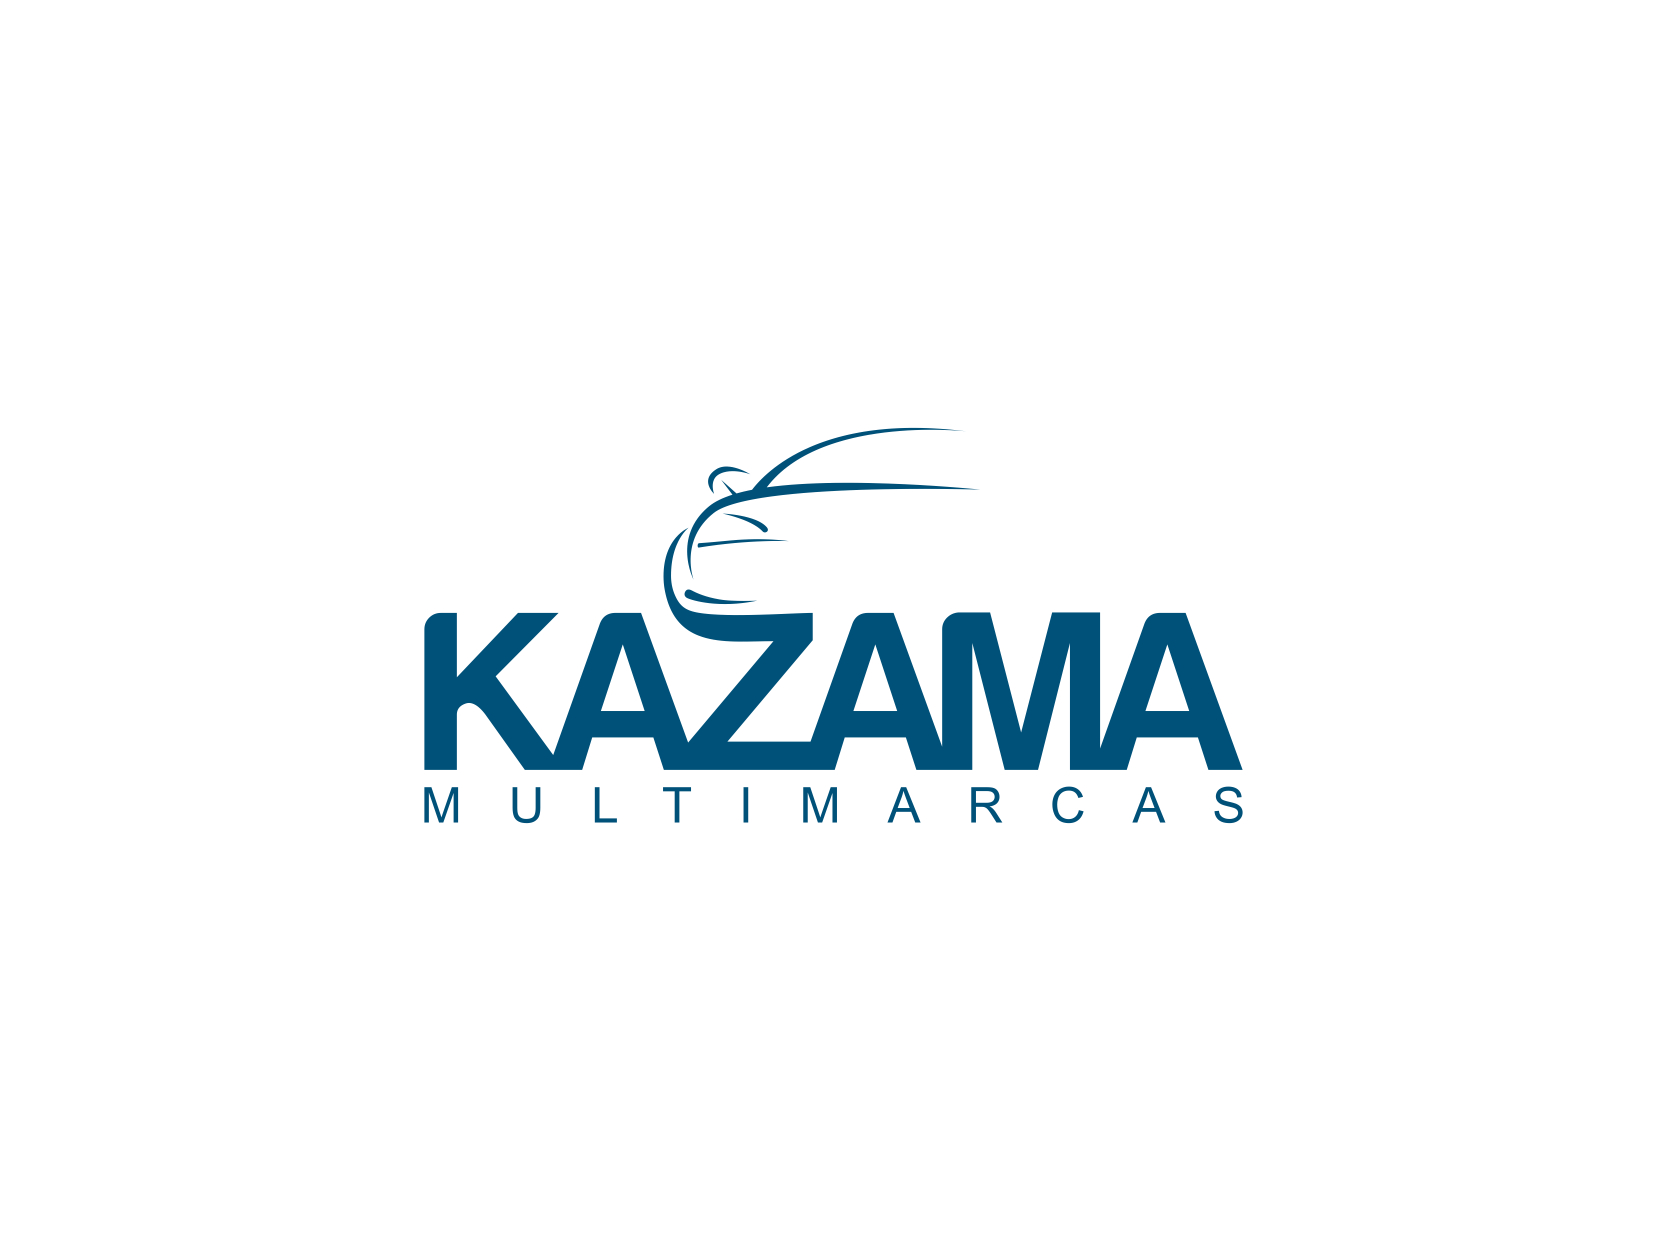 Kazama Multimarcas